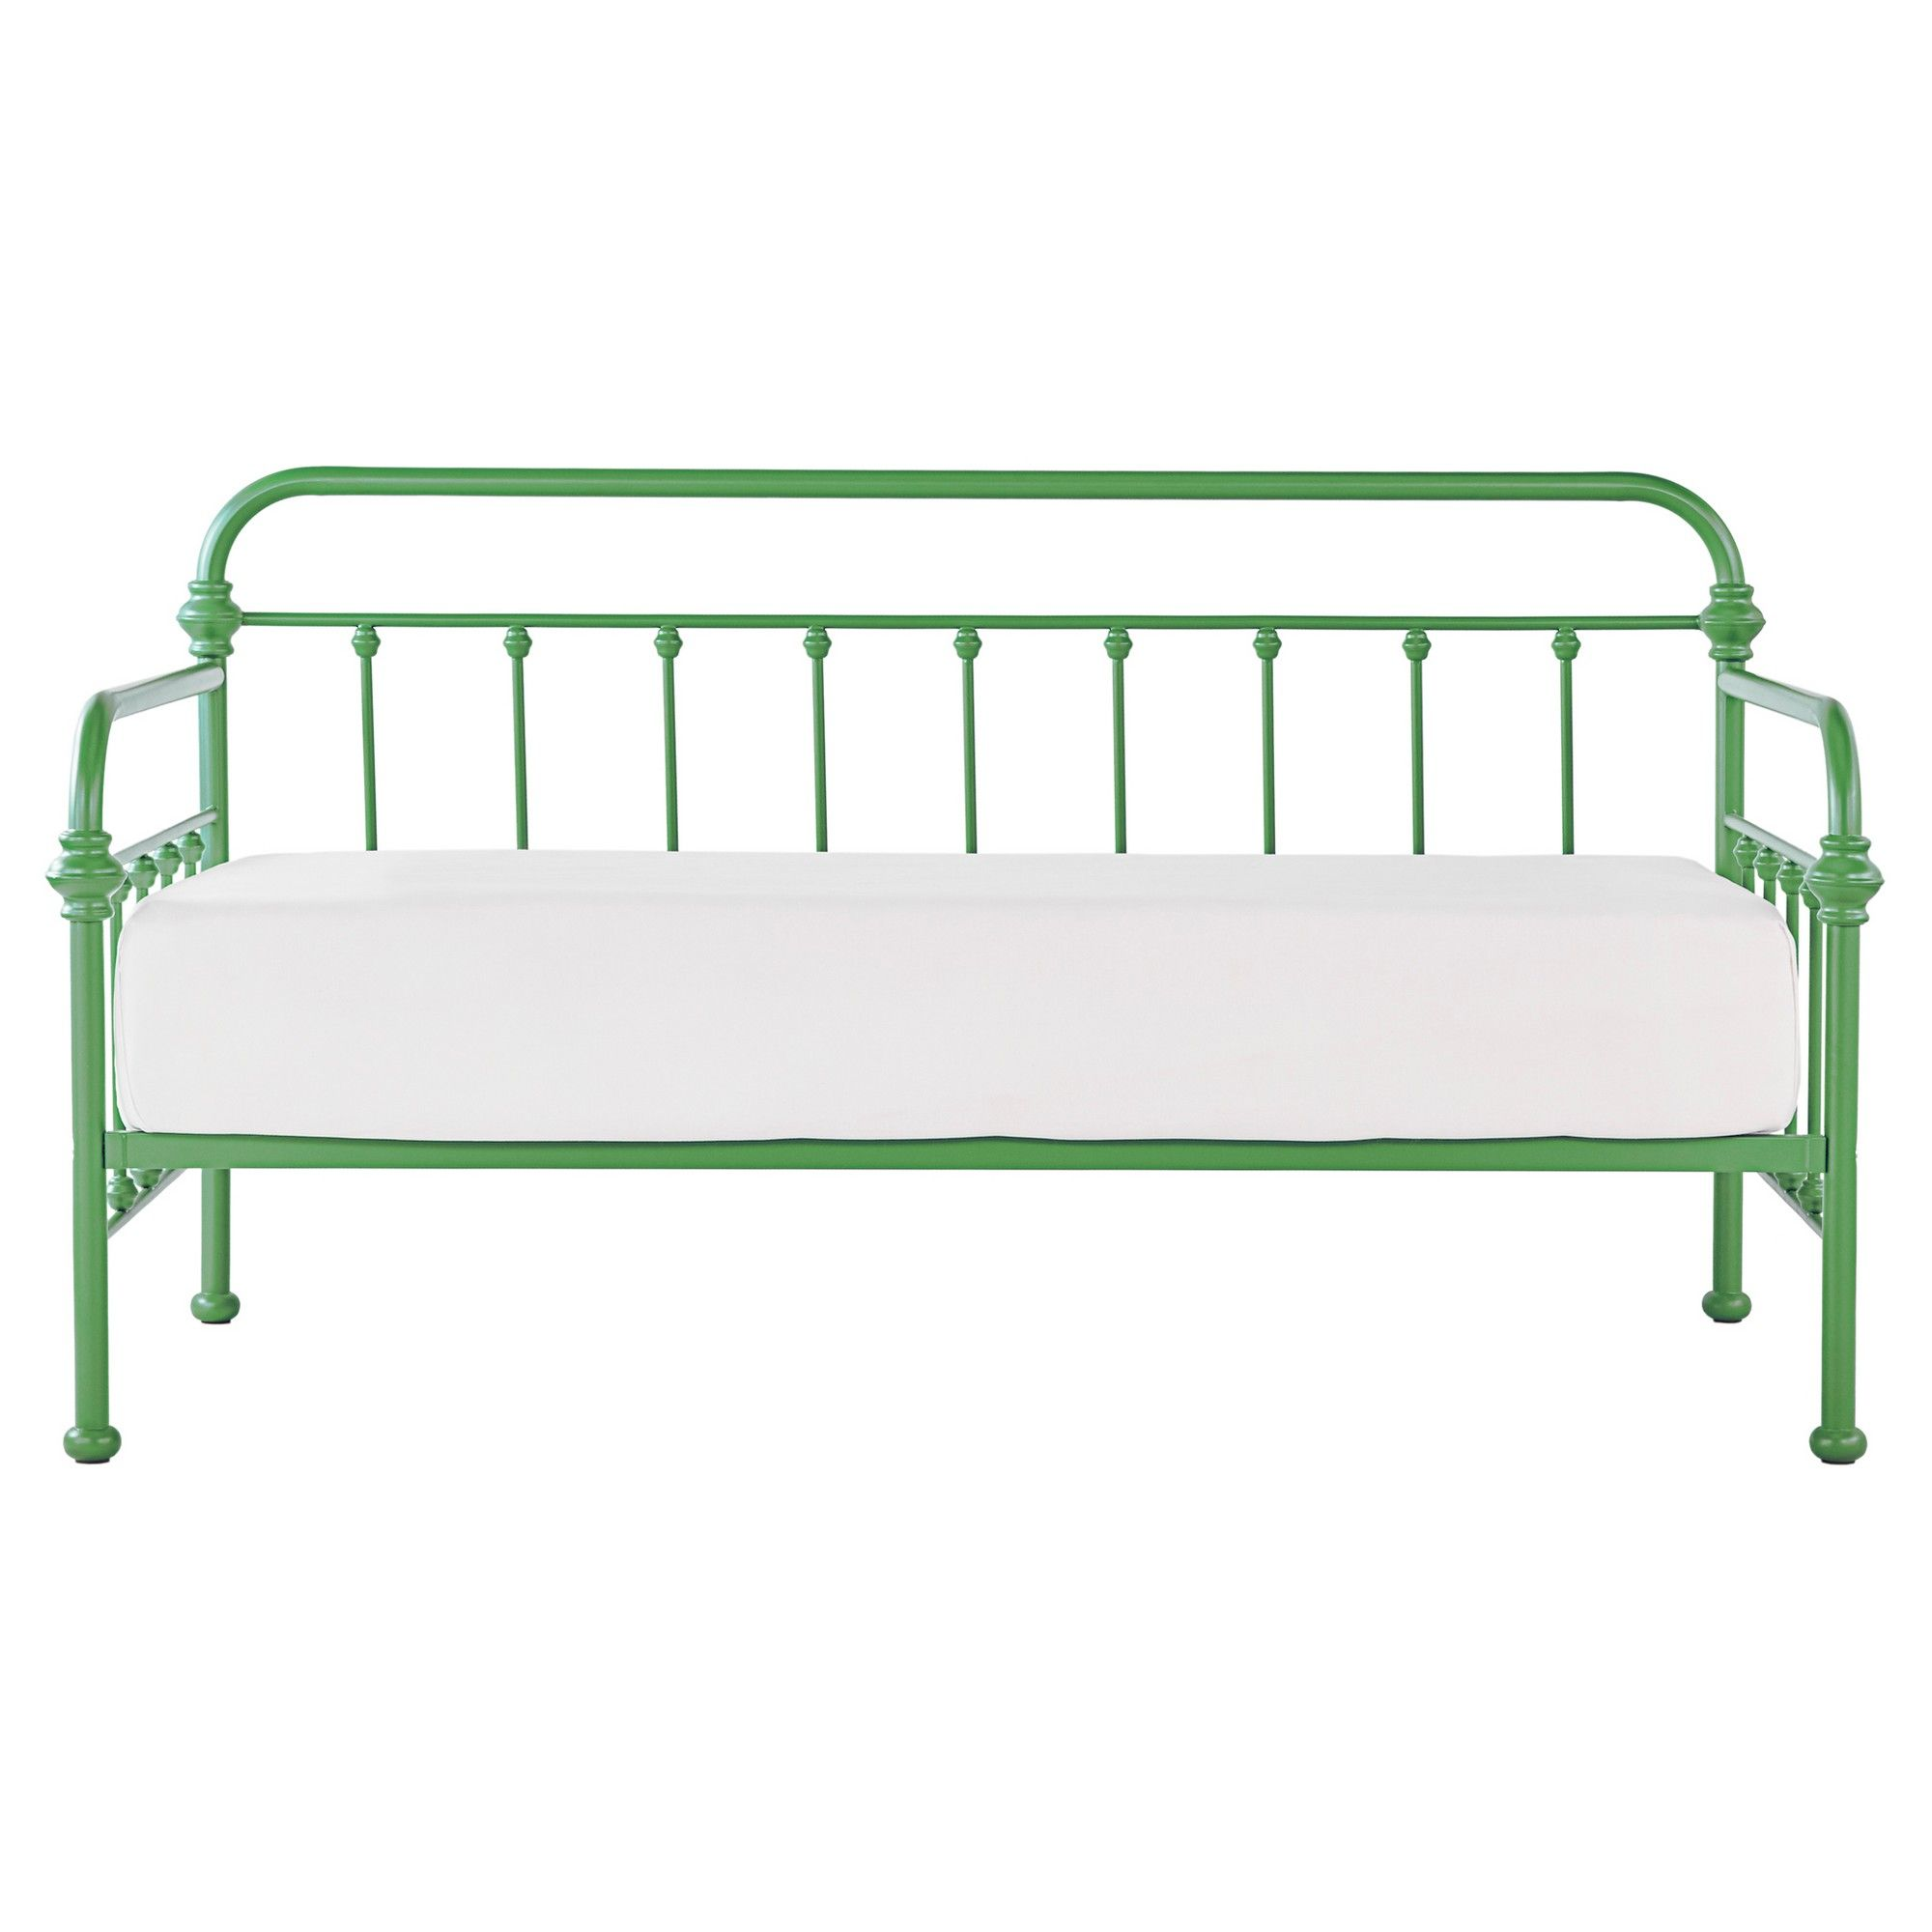 Tilden Ii Vintage Metal Daybed - Twin - Spring Green - Inspire Q, Silver  Putty